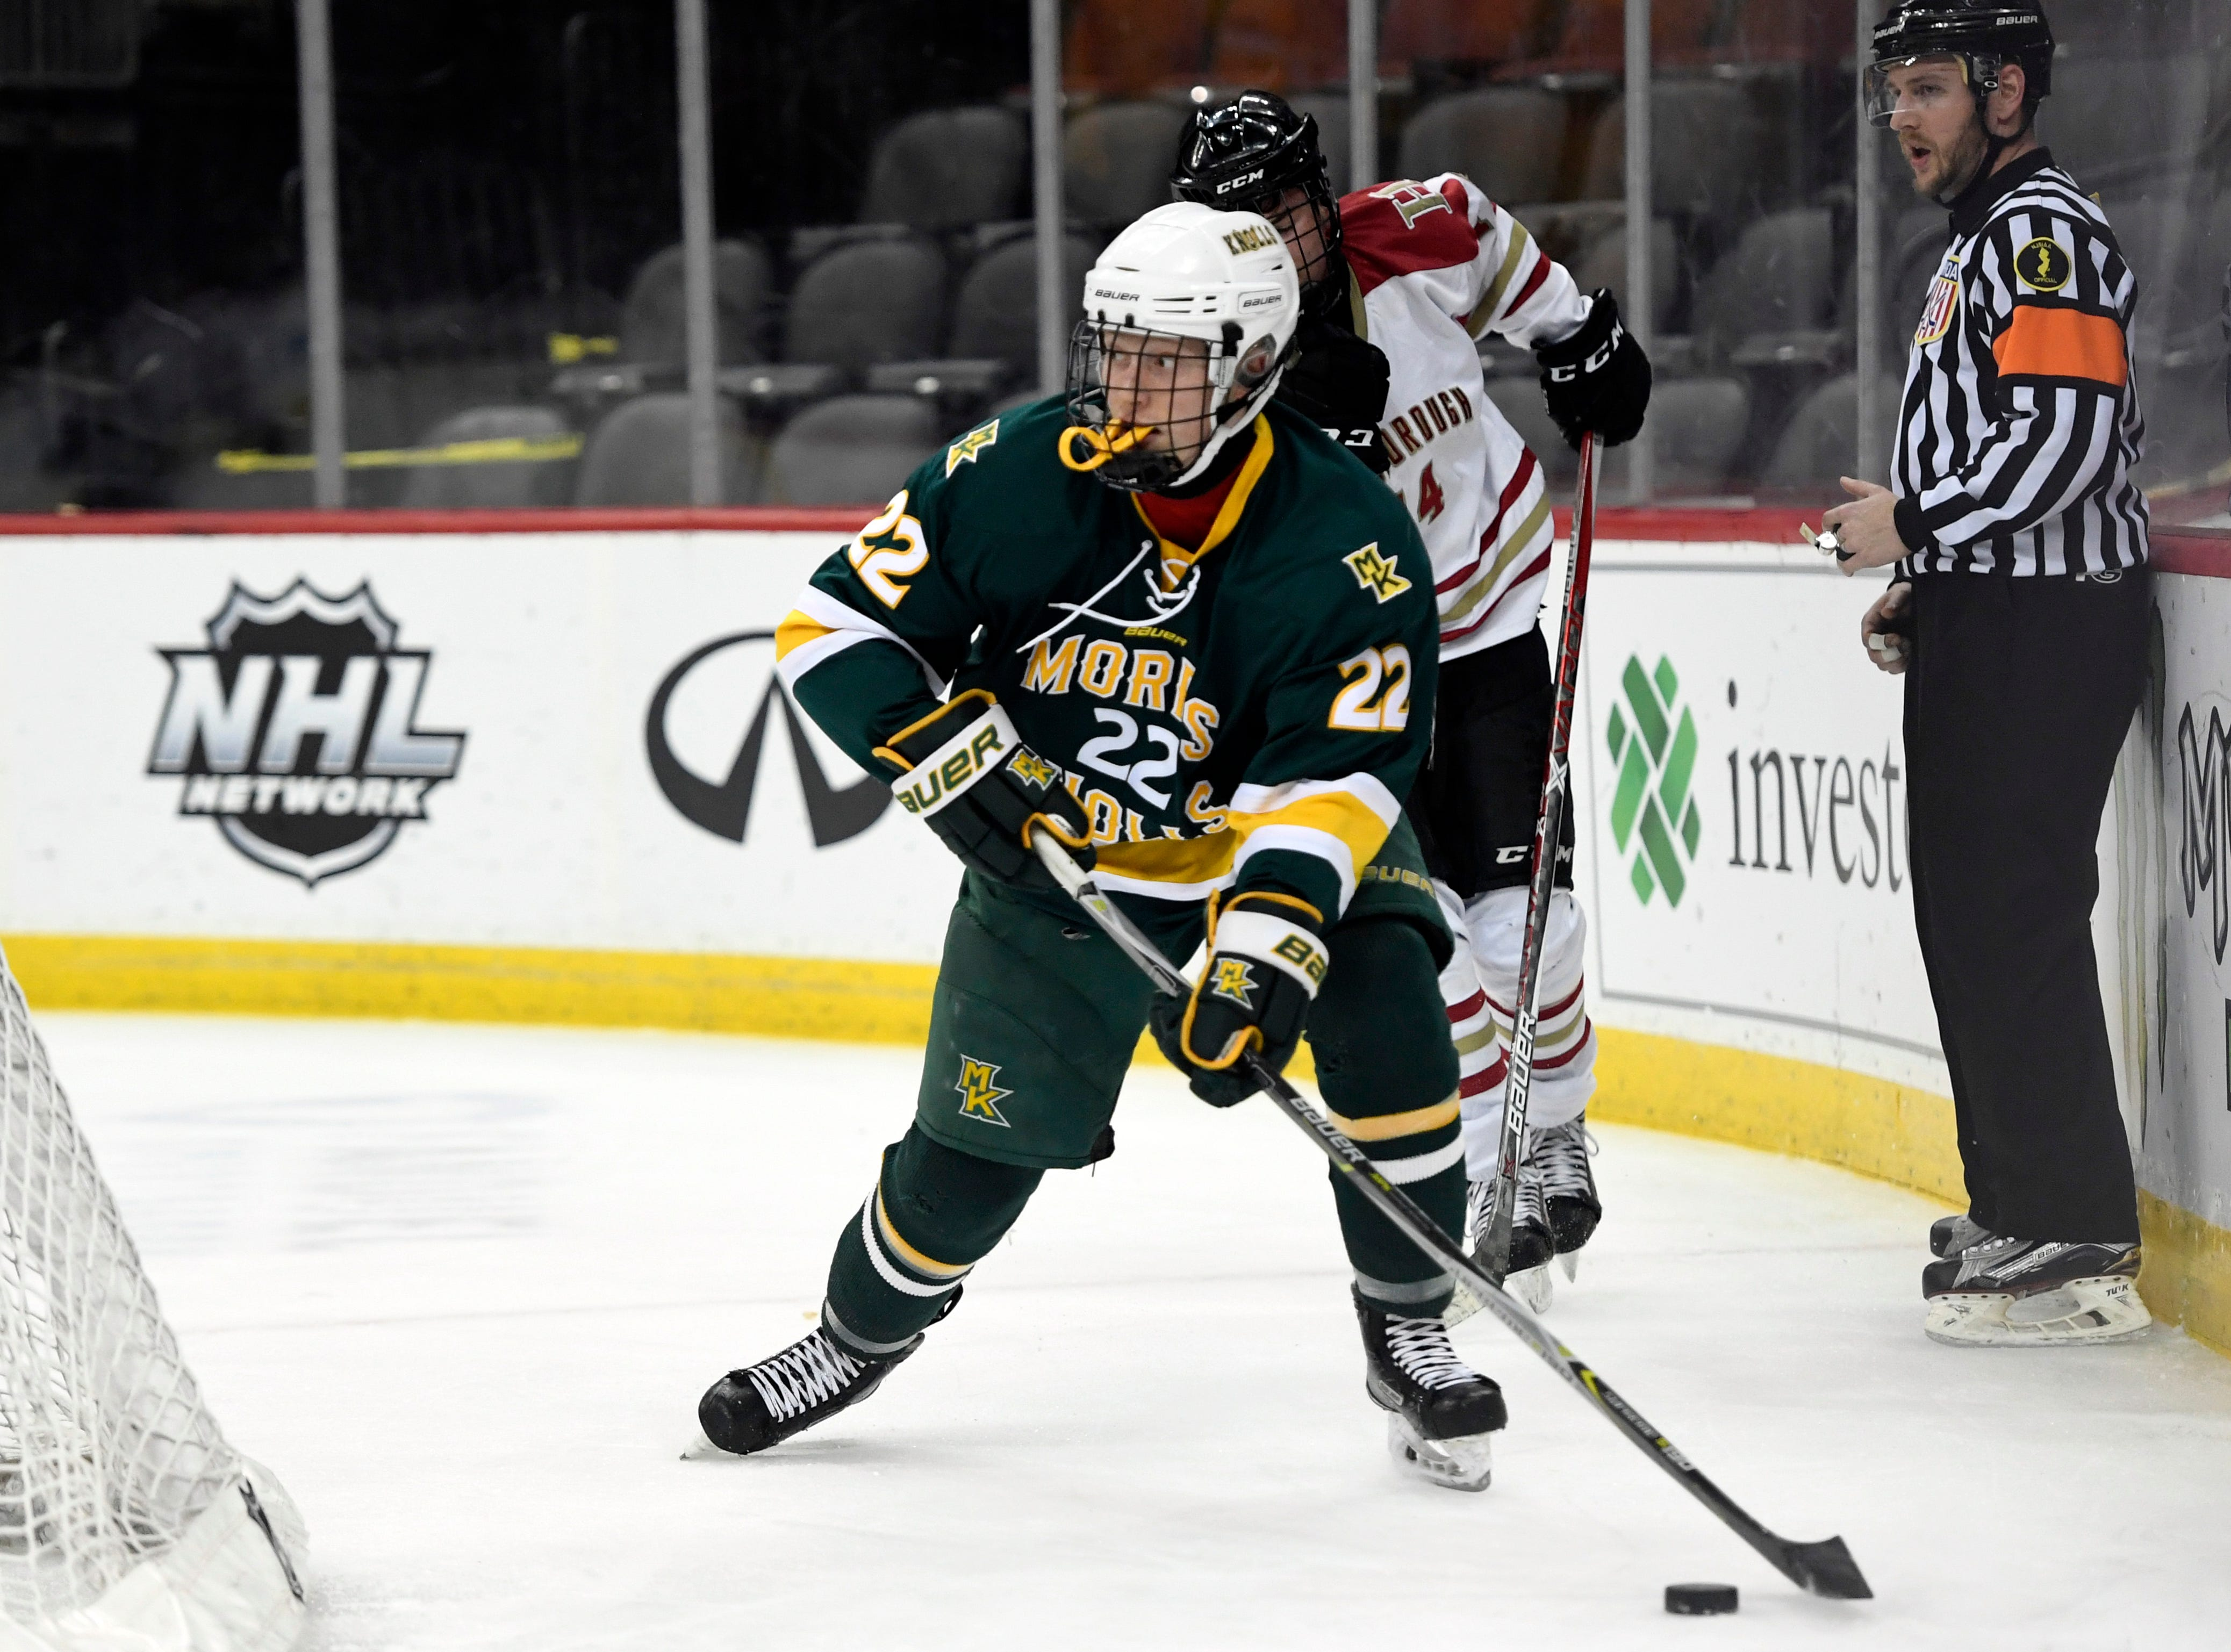 Morris Knolls/Hills' Jason Miesegaes (22) clears the puck from the Knolls/Hills end of the ice in the Public A ice hockey final at the Prudential Center on Monday, March 4, 2019, in Newark.